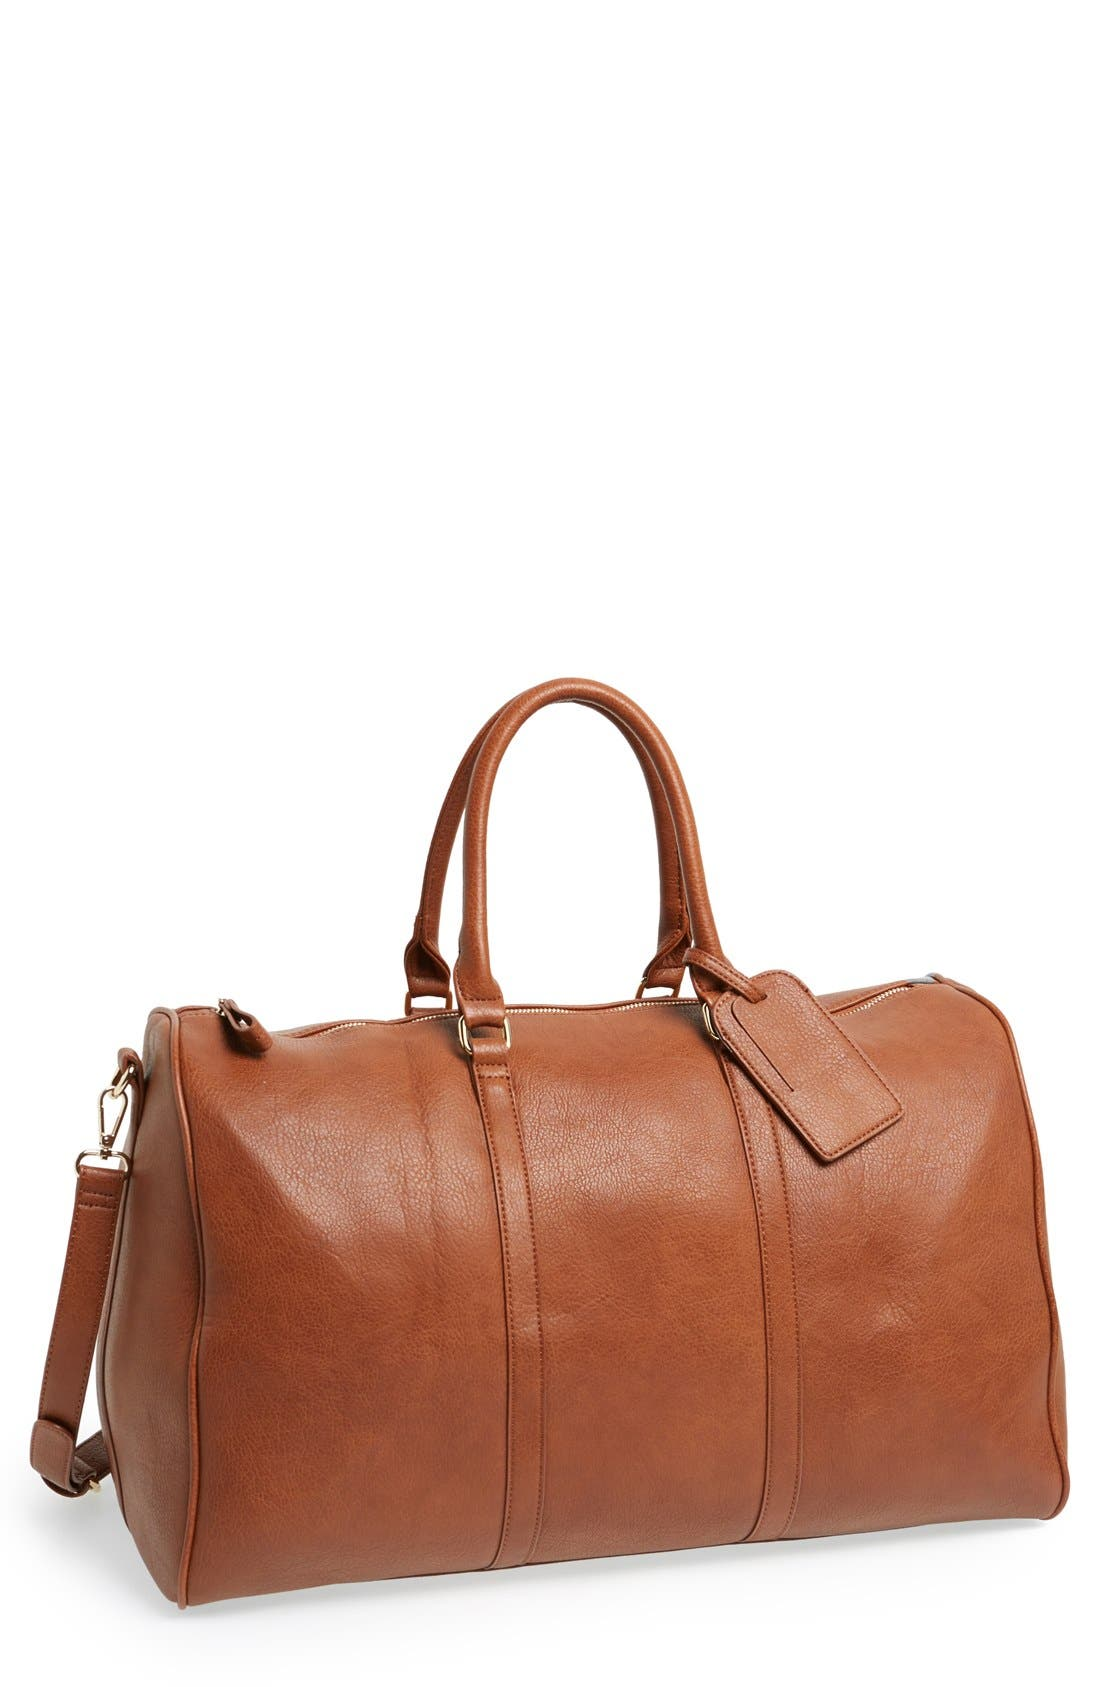 Alternate Image 1 Selected - Sole Society 'Lacie' Faux Leather Duffel Bag